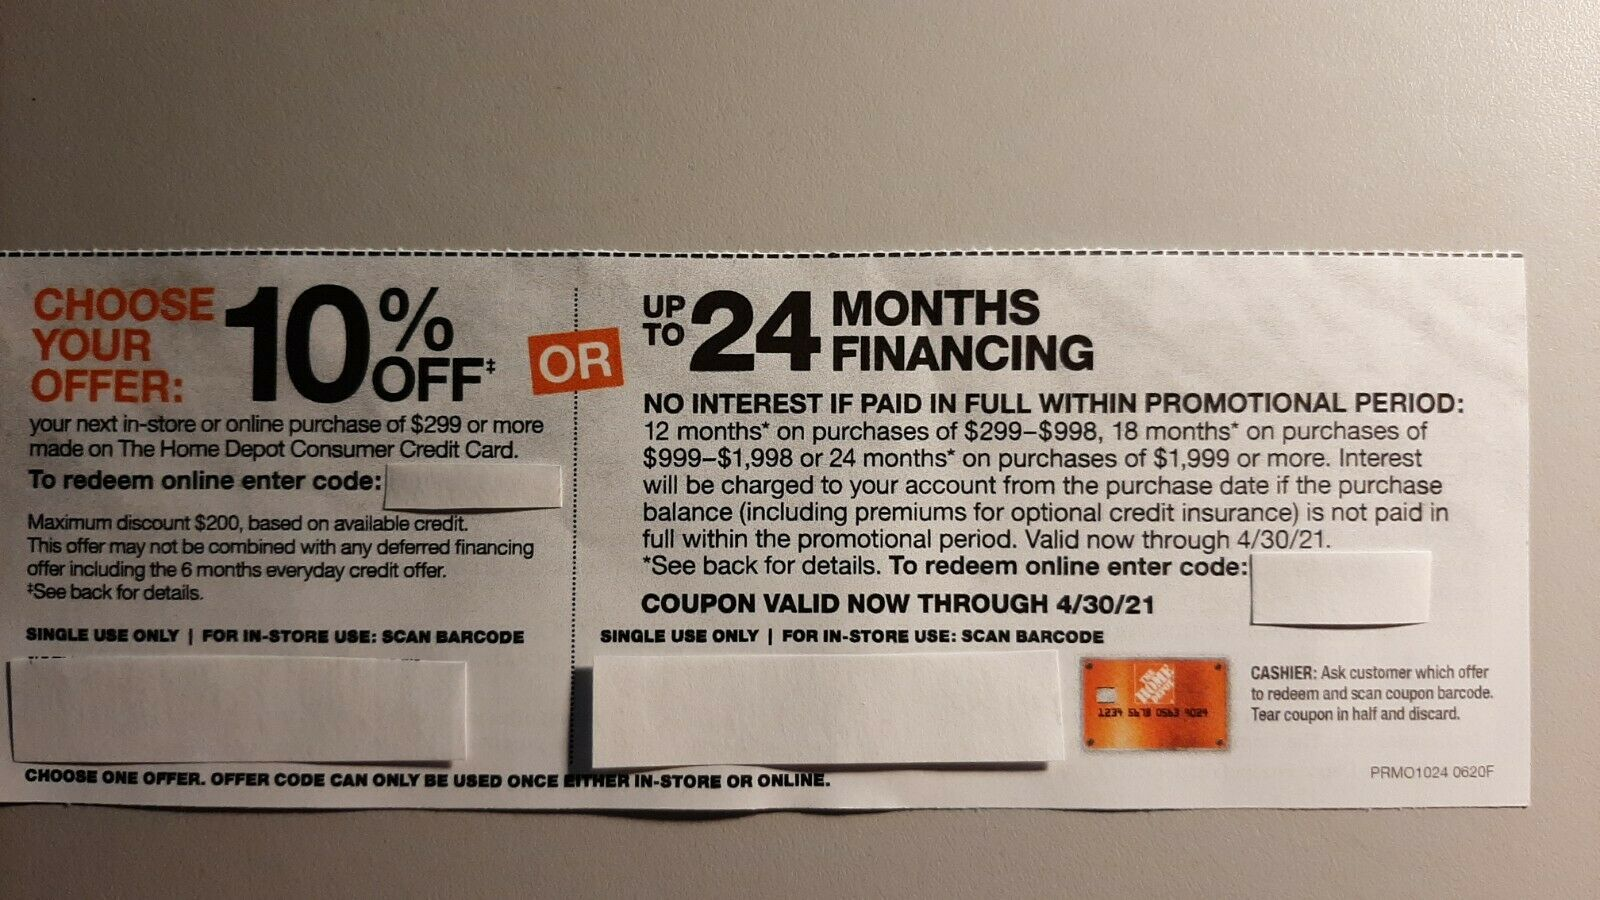 Home Depot Coupon 10 Off Or Up To 24mo. Fin. in-store Or Online Now - 4/30  - $29.99